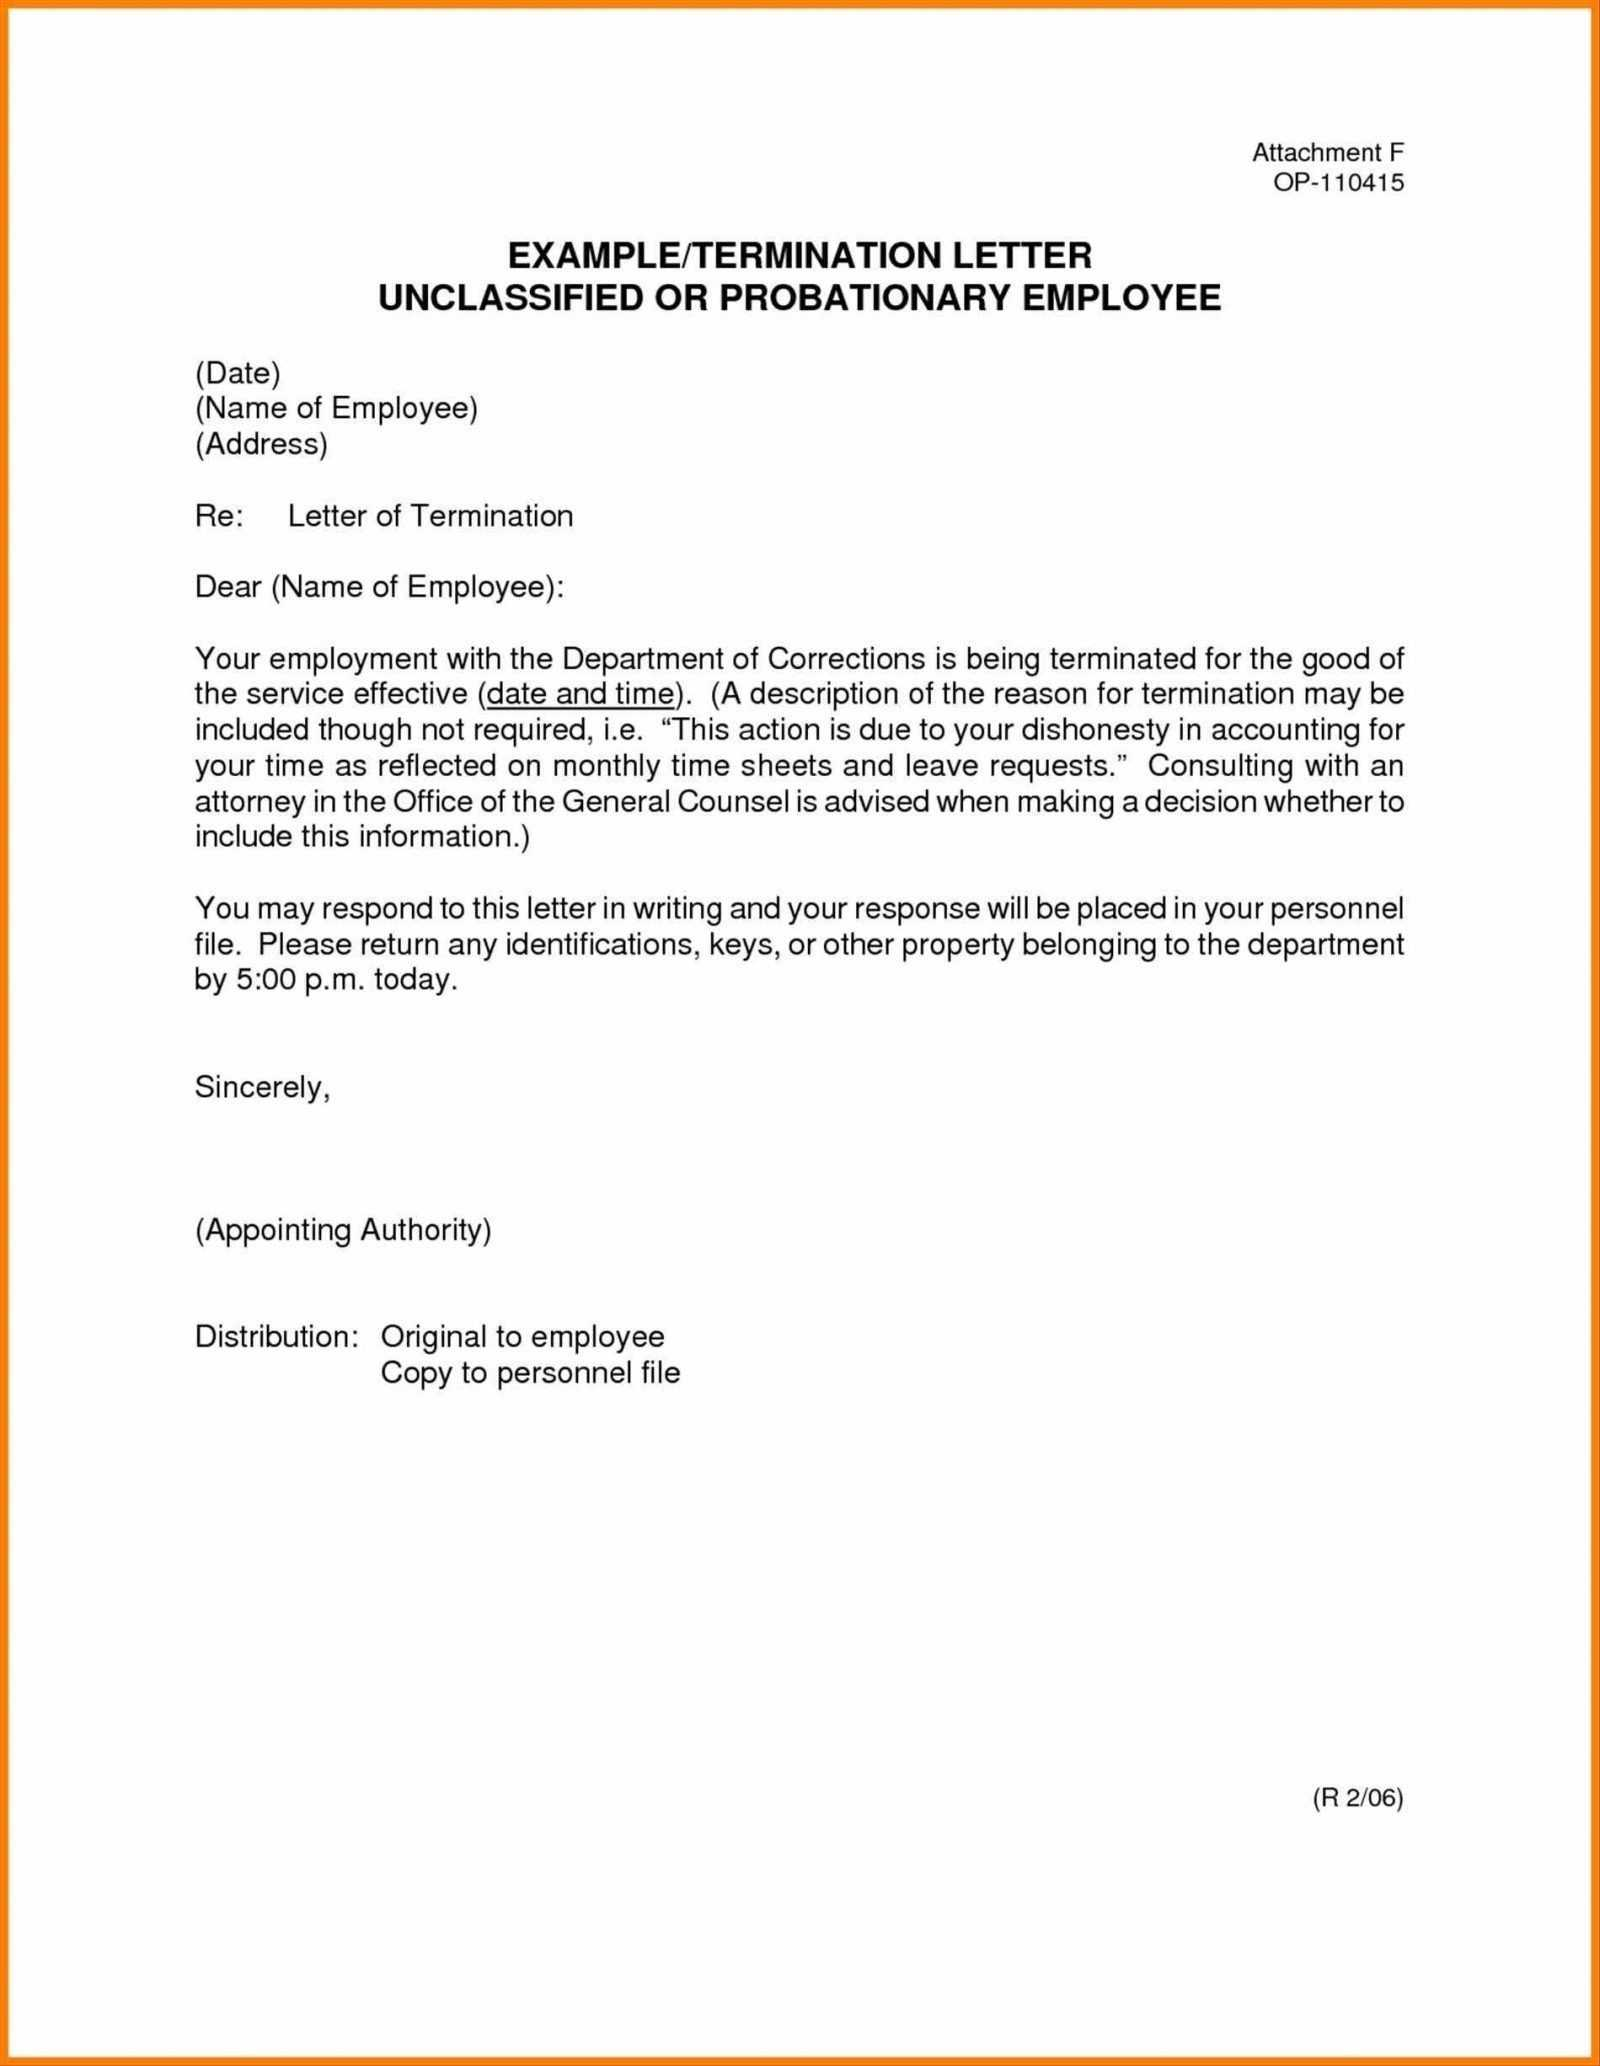 23 PDF LICENCE CANCELLATION LETTER TEMPLATE FREE